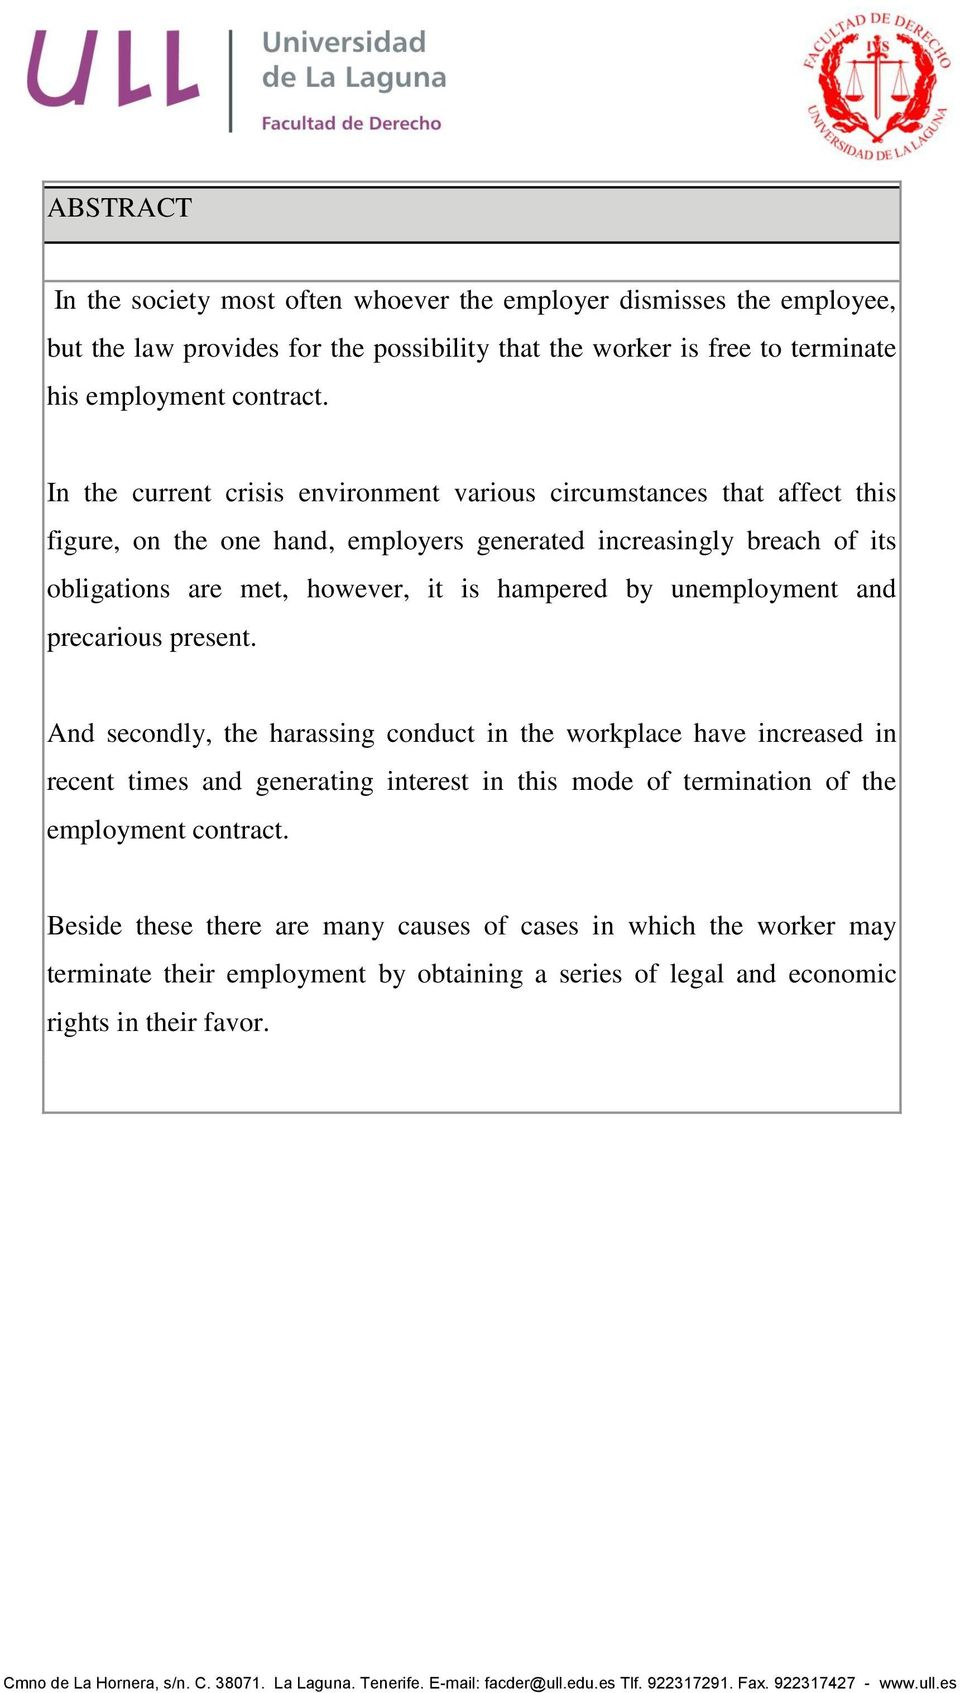 unemployment and precarious present. And secondly, the harassing conduct in the workplace have increased in recent times and generating interest in this mode of termination of the employment contract.